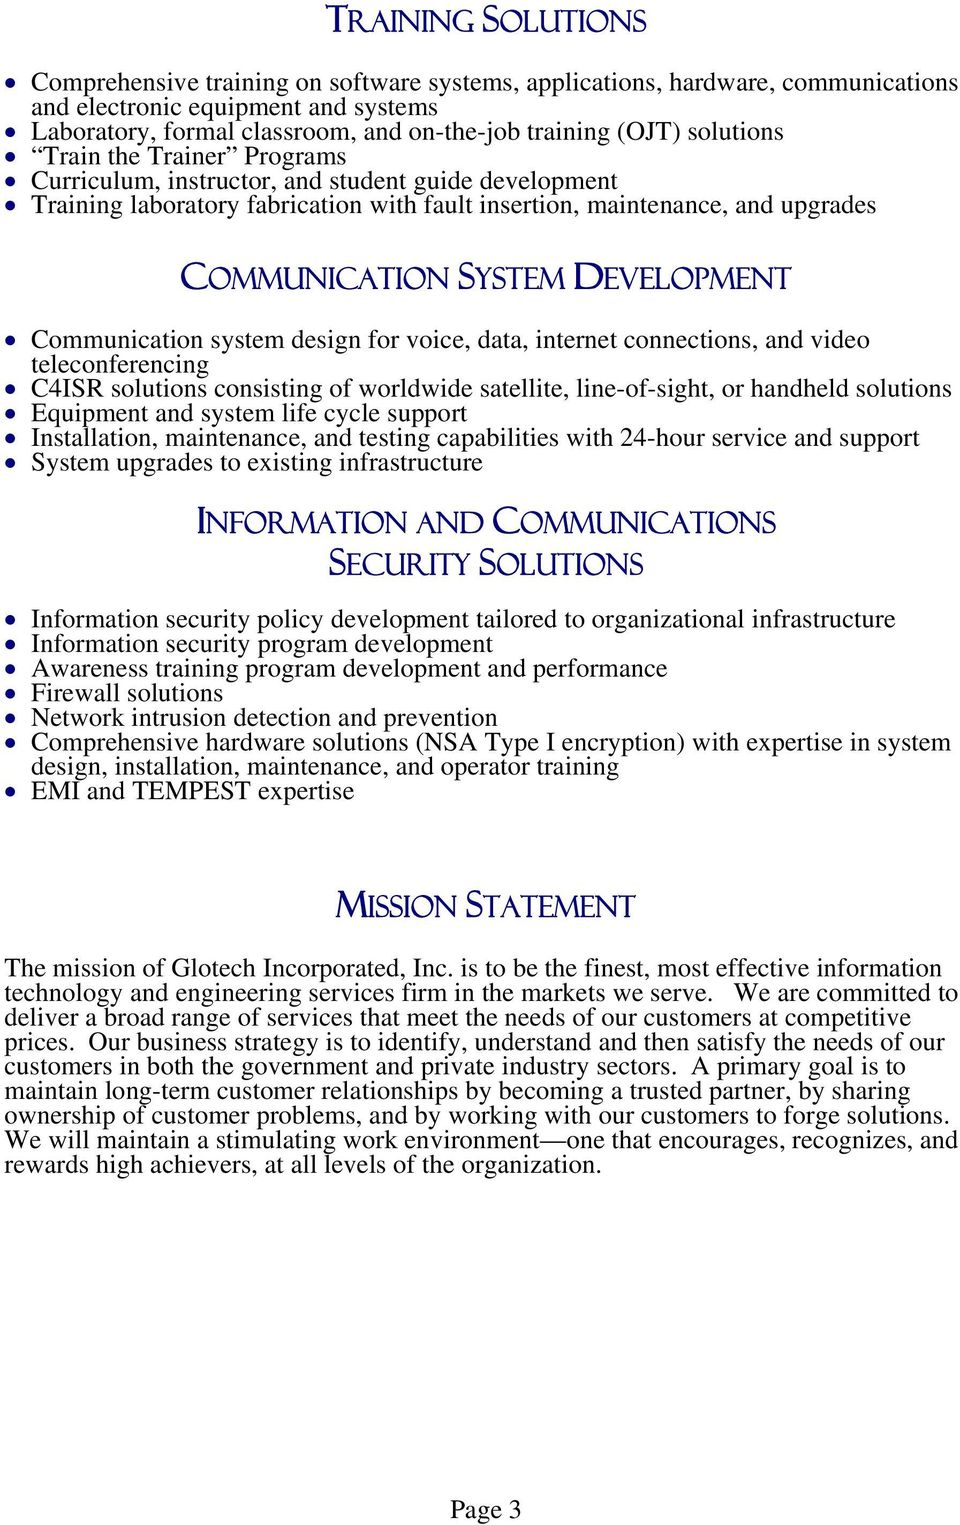 DEVELOPMENT Communication system design for voice, data, internet connections, and video teleconferencing C4ISR solutions consisting of worldwide satellite, line-of-sight, or handheld solutions